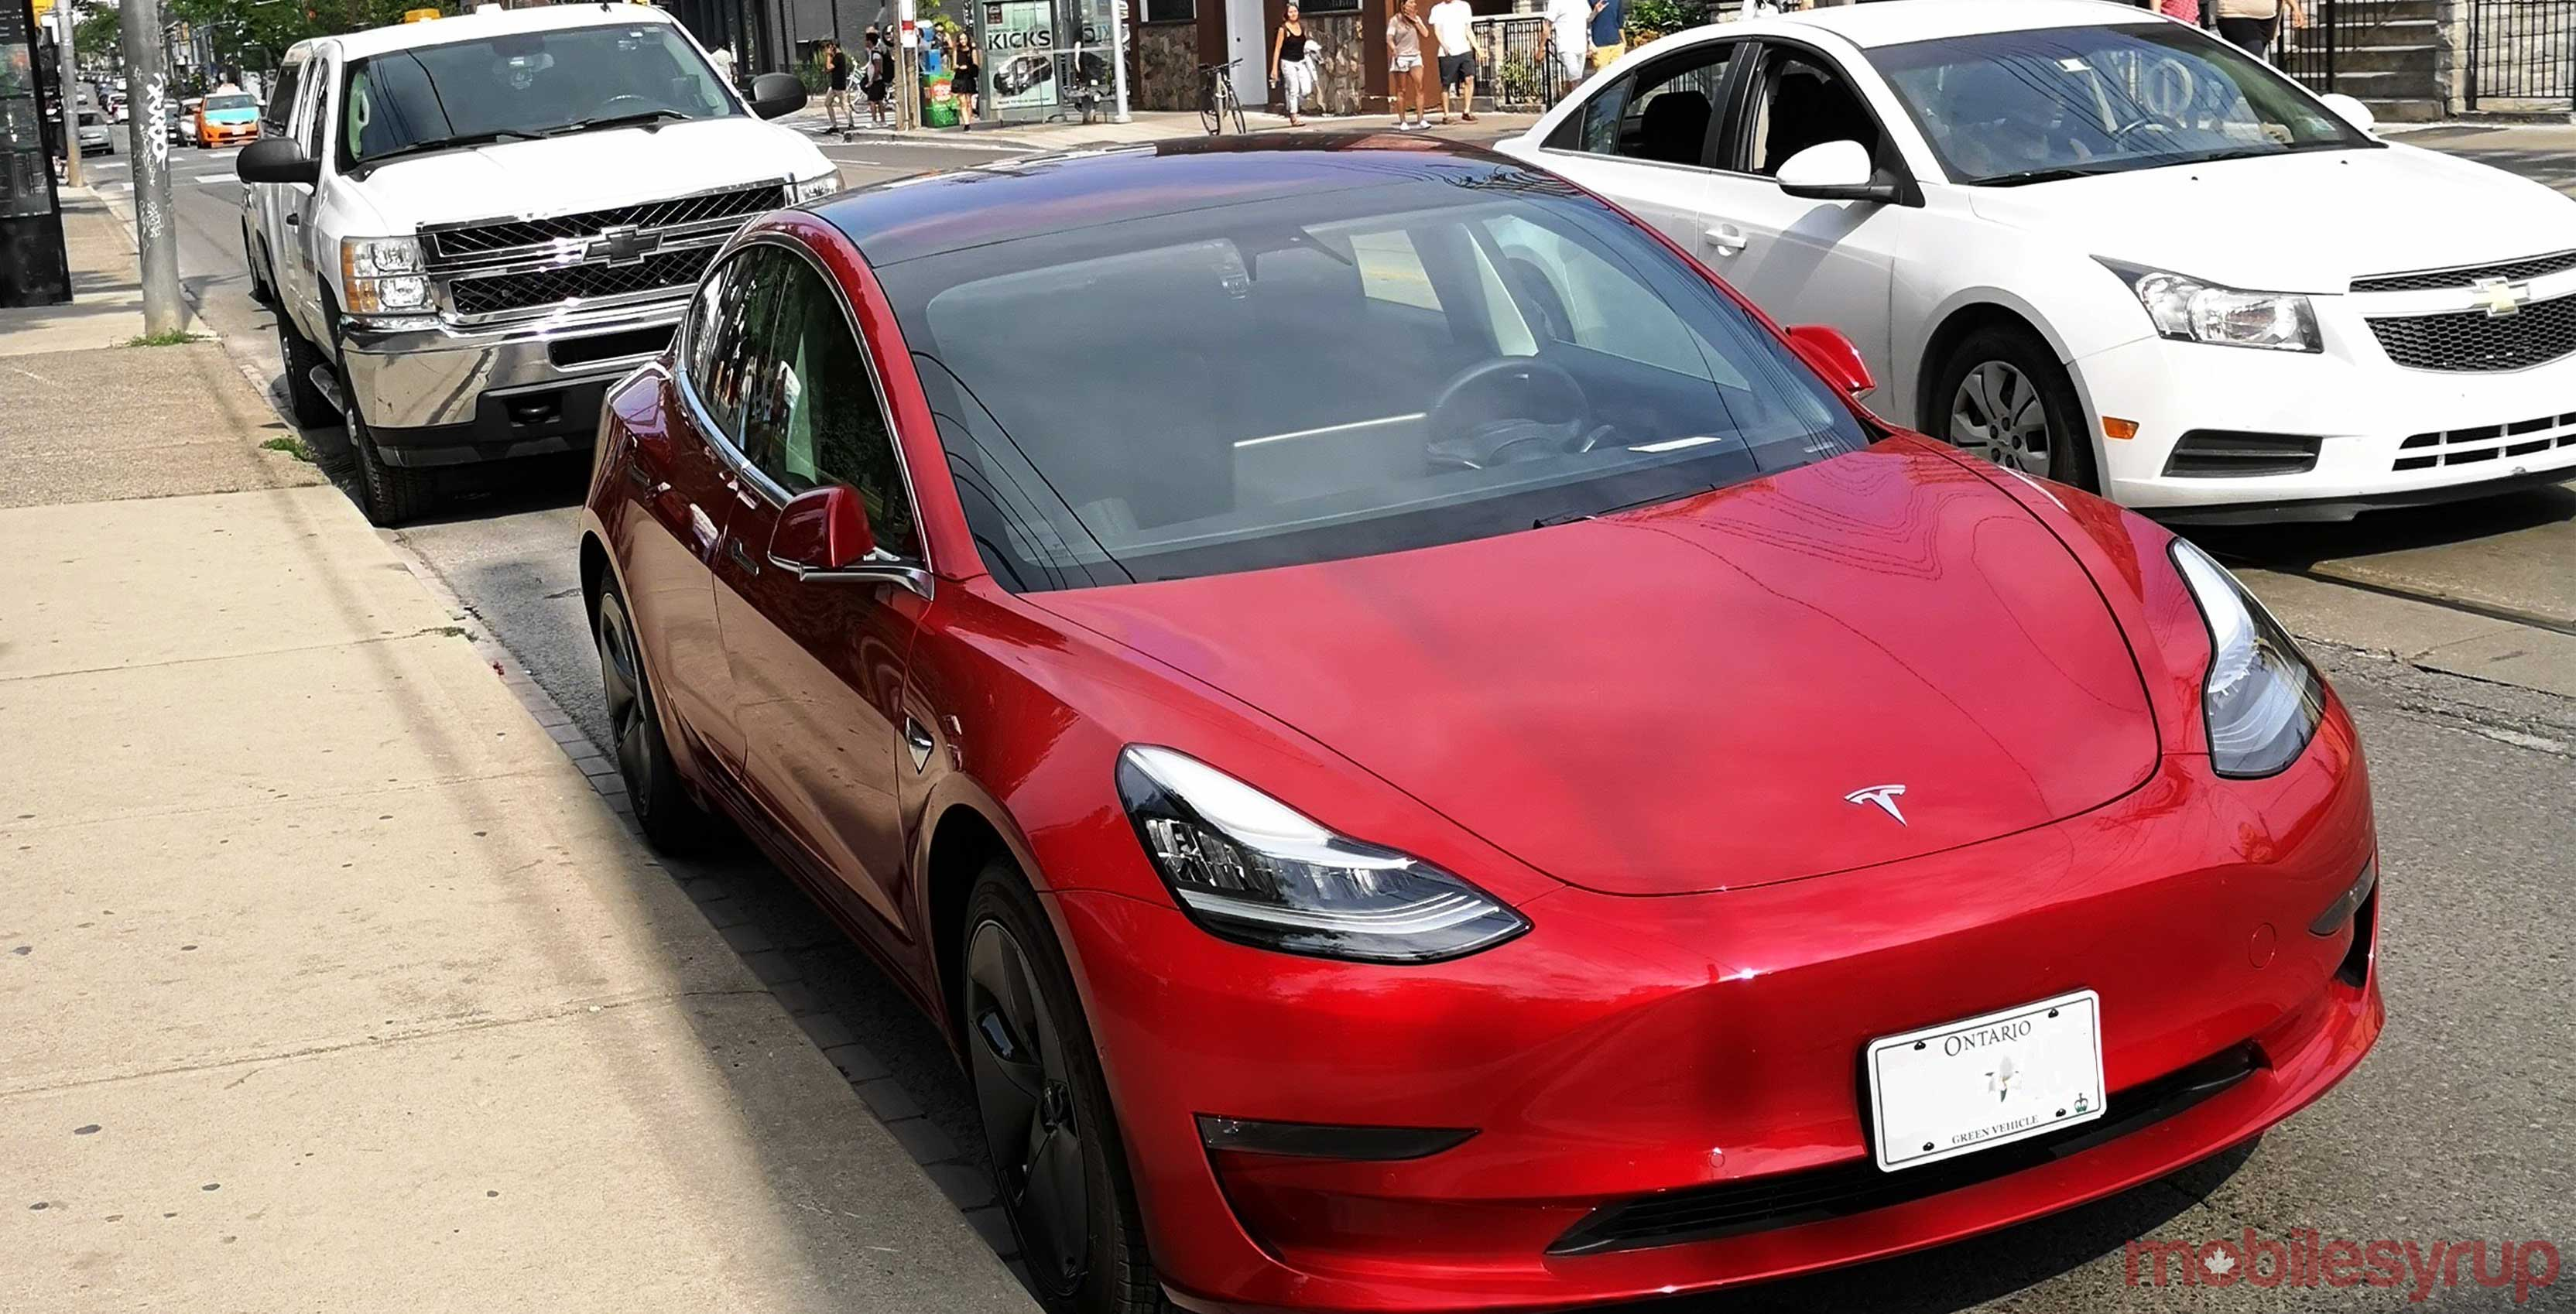 a326aee29a3 U.S.-based electric vehicle manufacturer Tesla used its third quarter 2018  earnings report to reveal that the company shipped 56